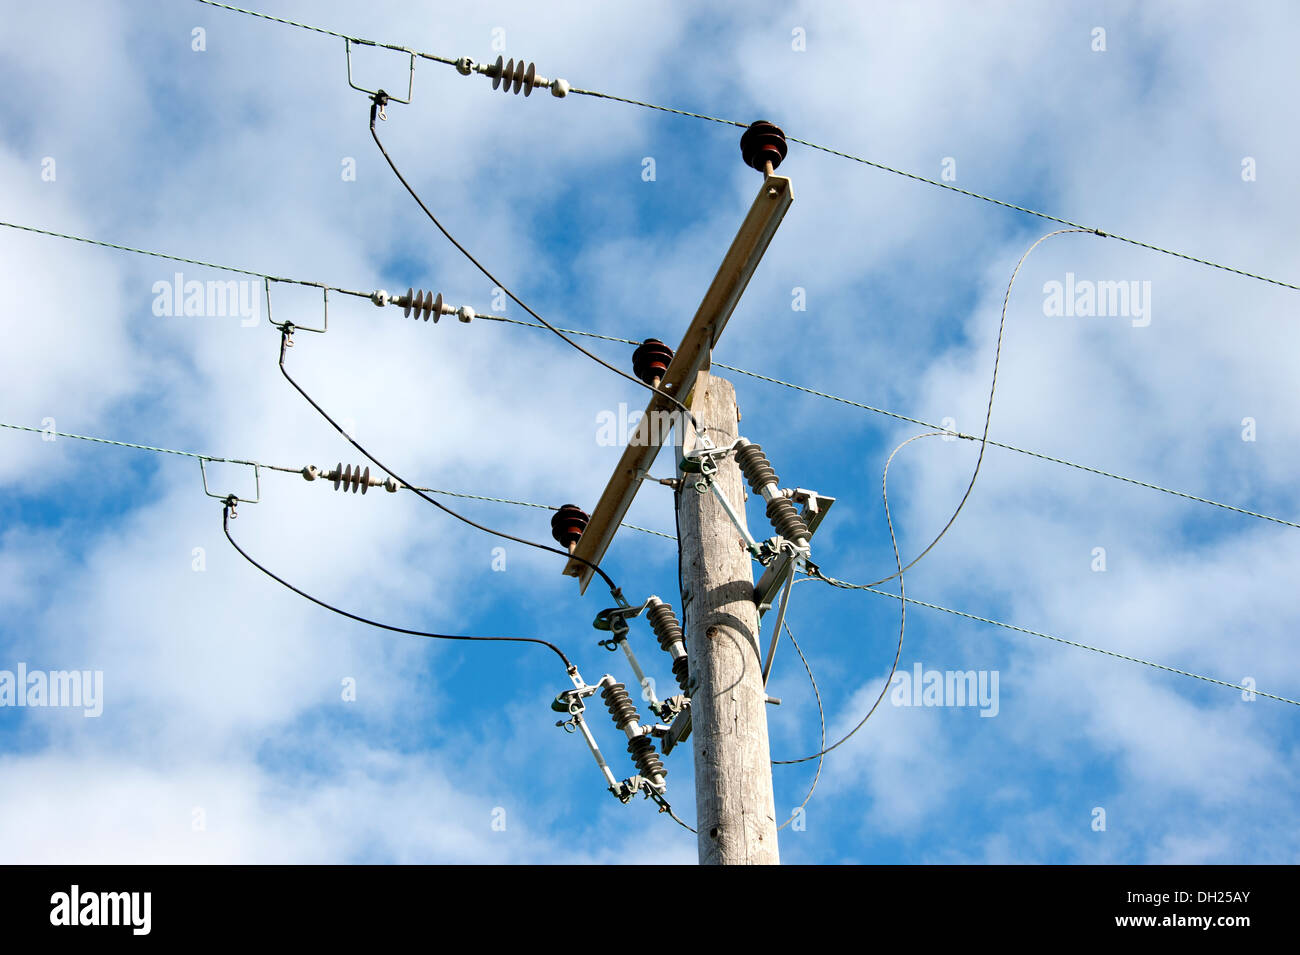 3 Phase High Voltage Electricity Wires Switchgear Stock Photo ...